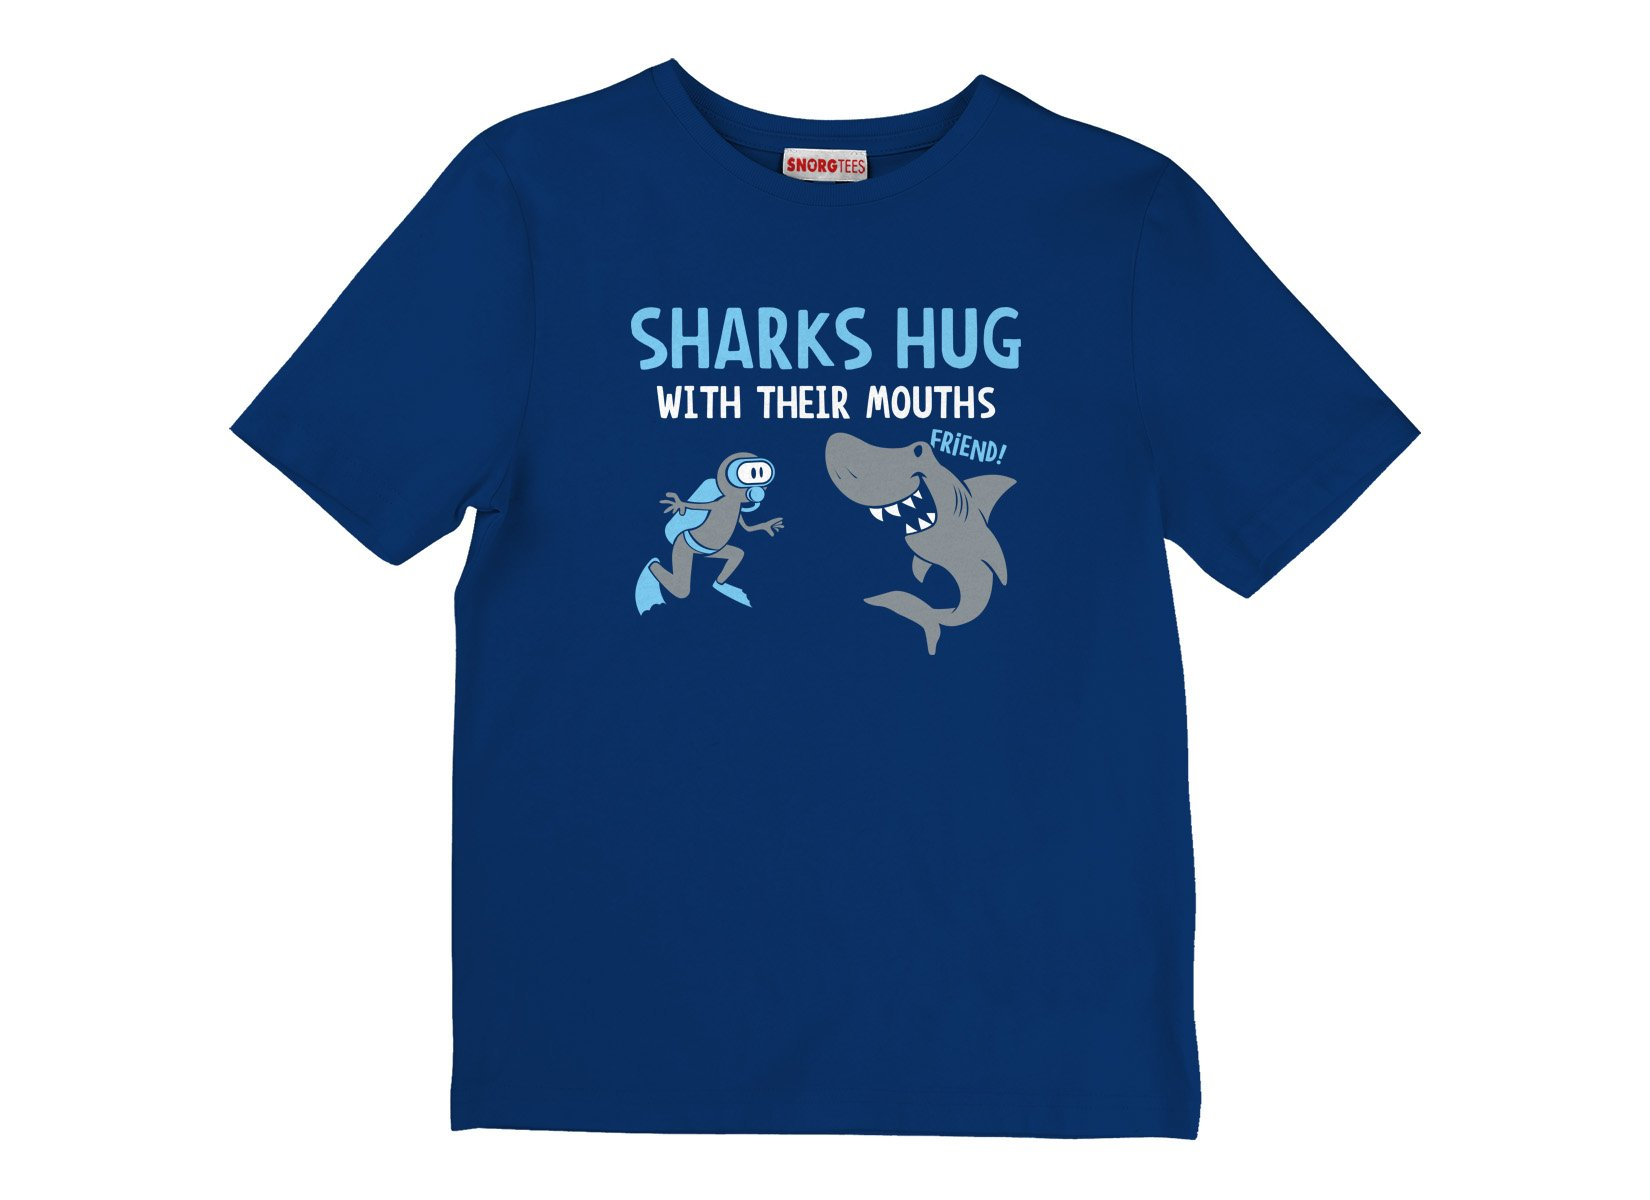 Sharks Hug With Their Mouths on Kids T-Shirt